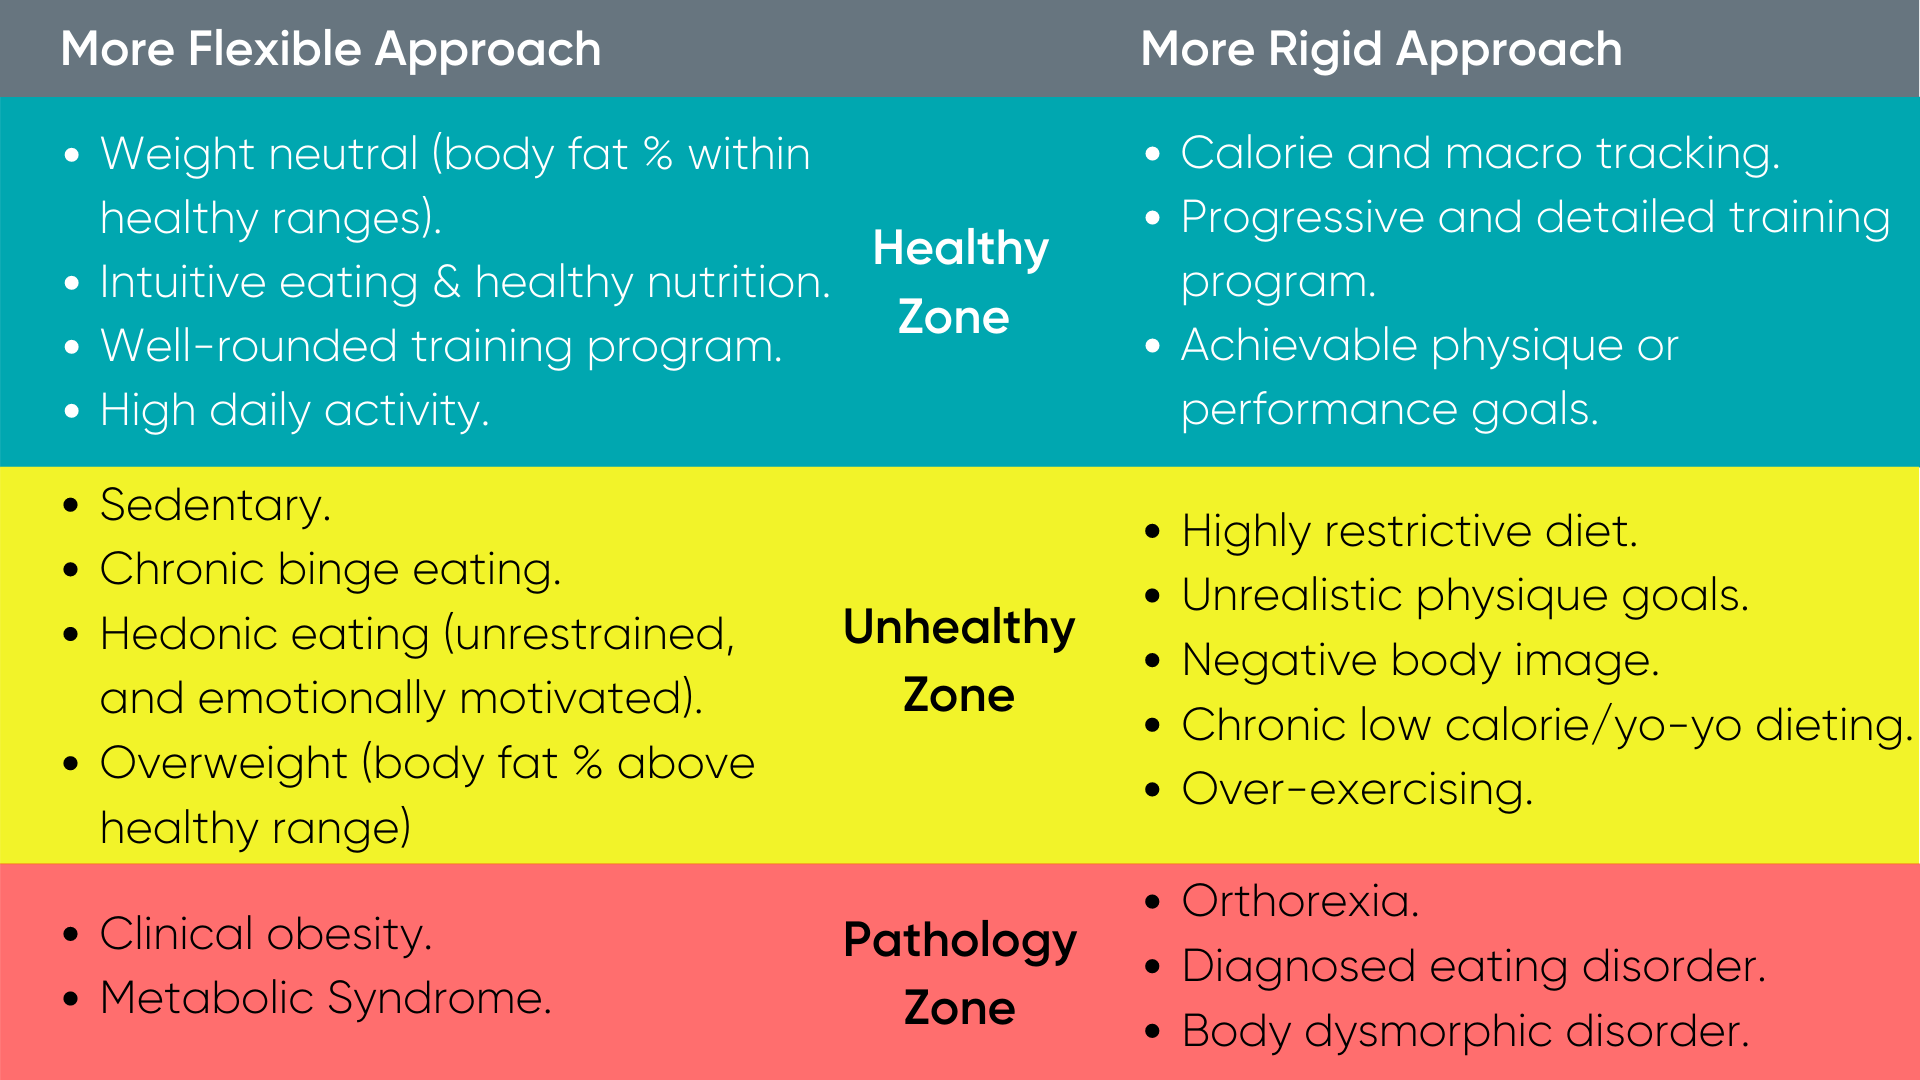 Rigid and flexible approaches 3